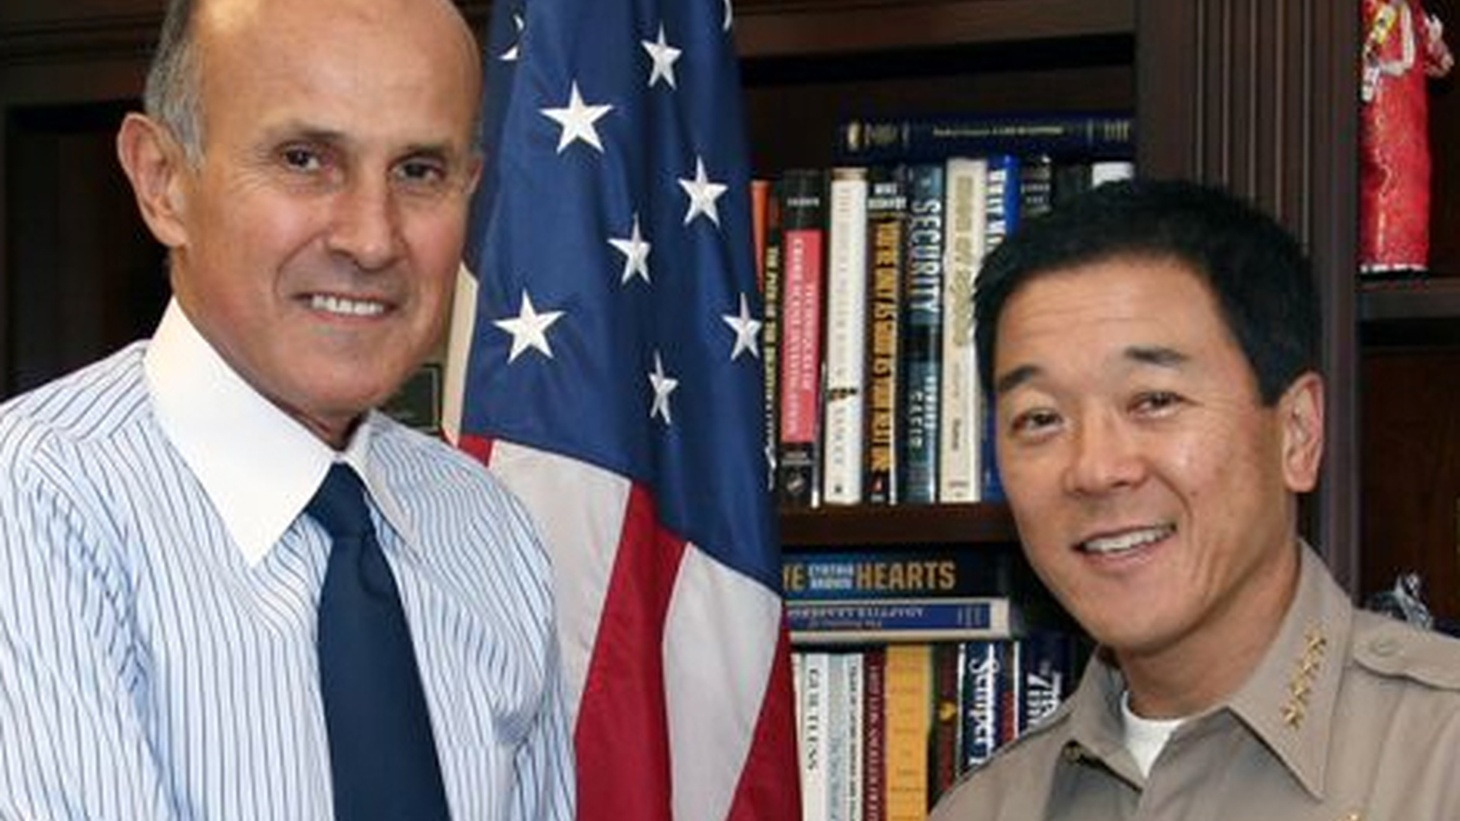 Former LA County Undersheriff Paul Tanaka, is scheduled to go on trial for his alleged role in obstructing a federal investigation. How did the second in command at the Sheriff's Department end up on the wrong side of the law?